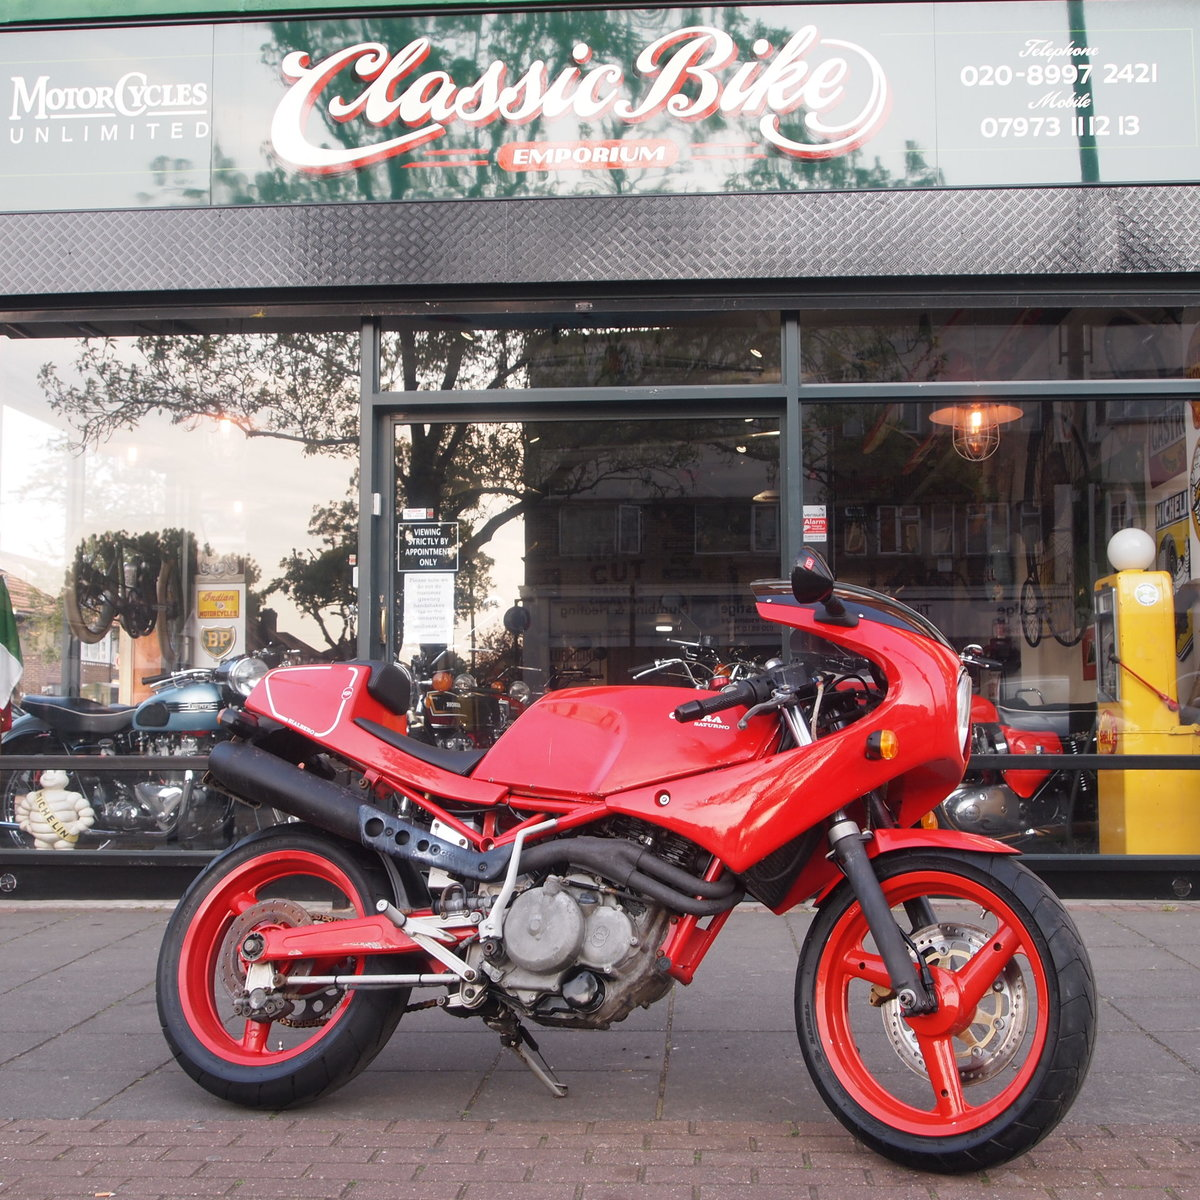 1989 Gilera Saturno Fitted With Running Paris Daker 550cc Unit. SOLD (picture 1 of 6)